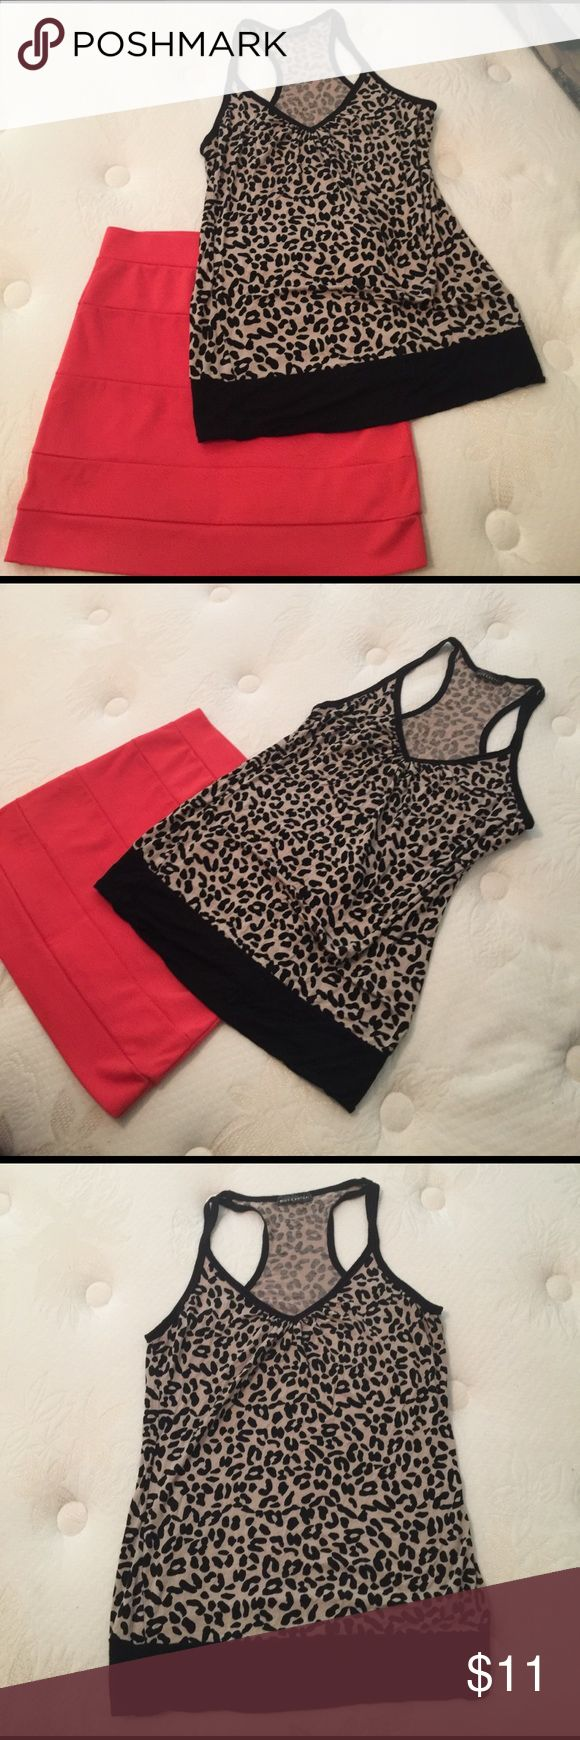 Body Central Outfit leopard top/ coral skirt sz:M Body Central Outfit leopard top/ coral skirt sz: M. The skirt is a tight and coral. The top is racerback loose leopard and black. Make an offer ❤ Body Central Skirts Mini